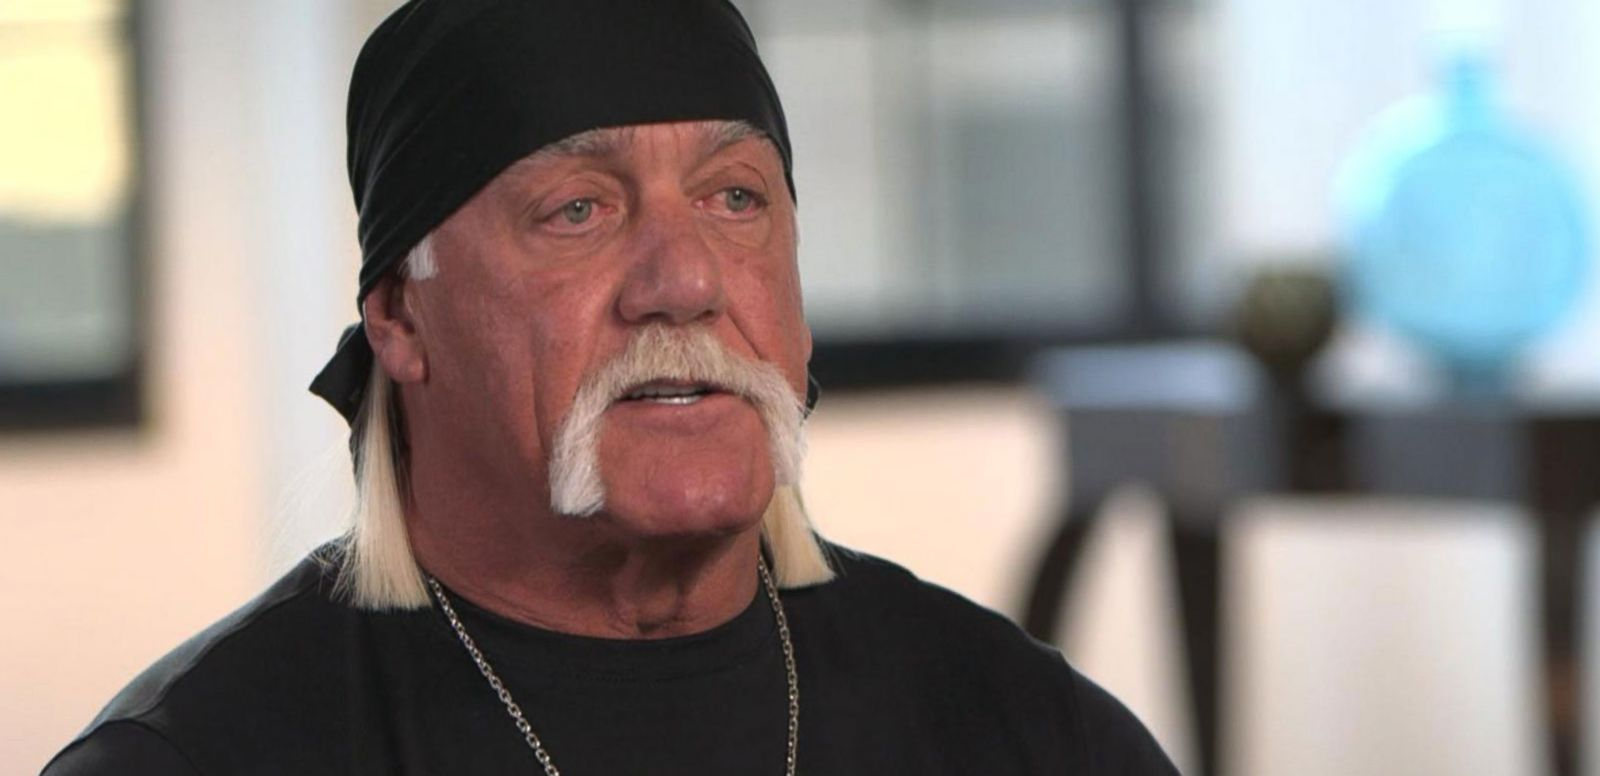 VIDEO: Hulk Hogan Discusses WWE Firing and Addresses Racist Comments